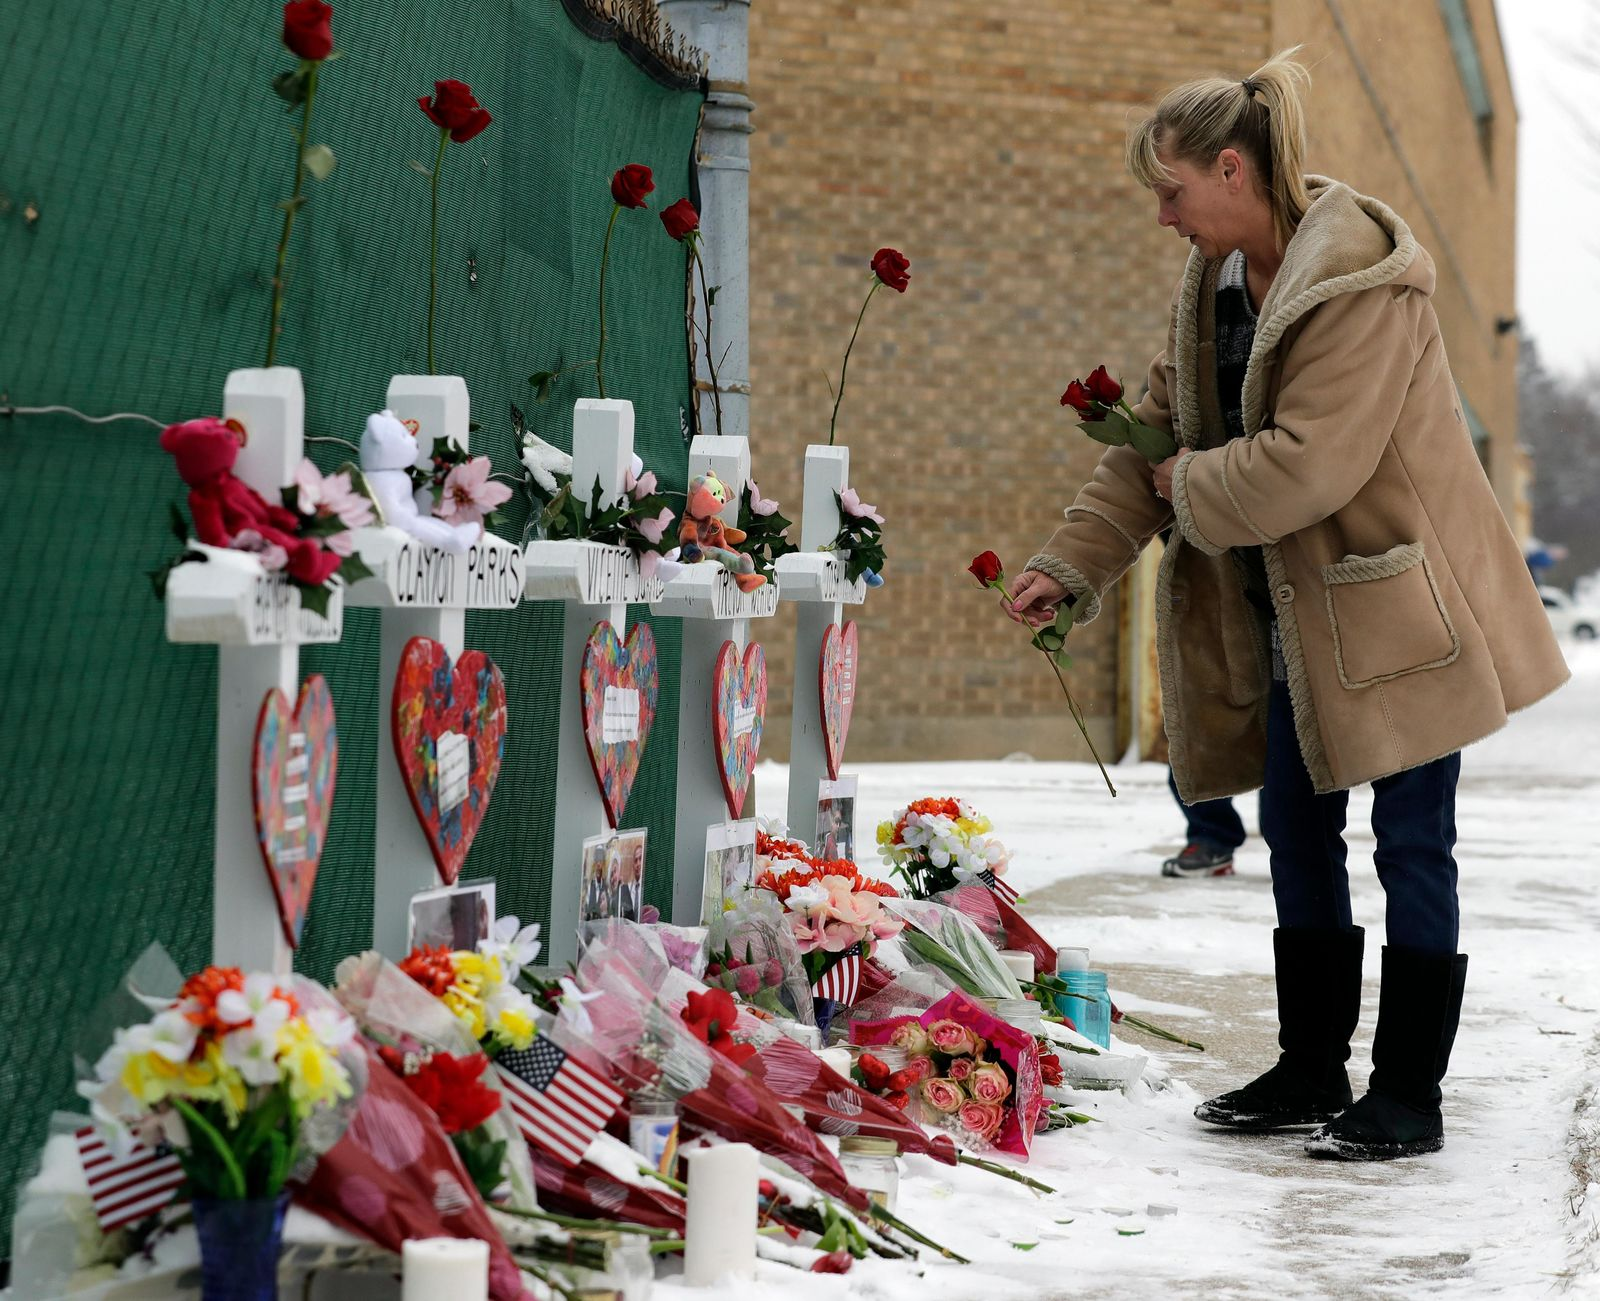 A woman places flowers at a makeshift memorial Sunday, Feb. 17, 2019, in Aurora, Ill., near Henry Pratt Co. manufacturing company where several were killed on Friday. (AP Photo/Nam Y. Huh)